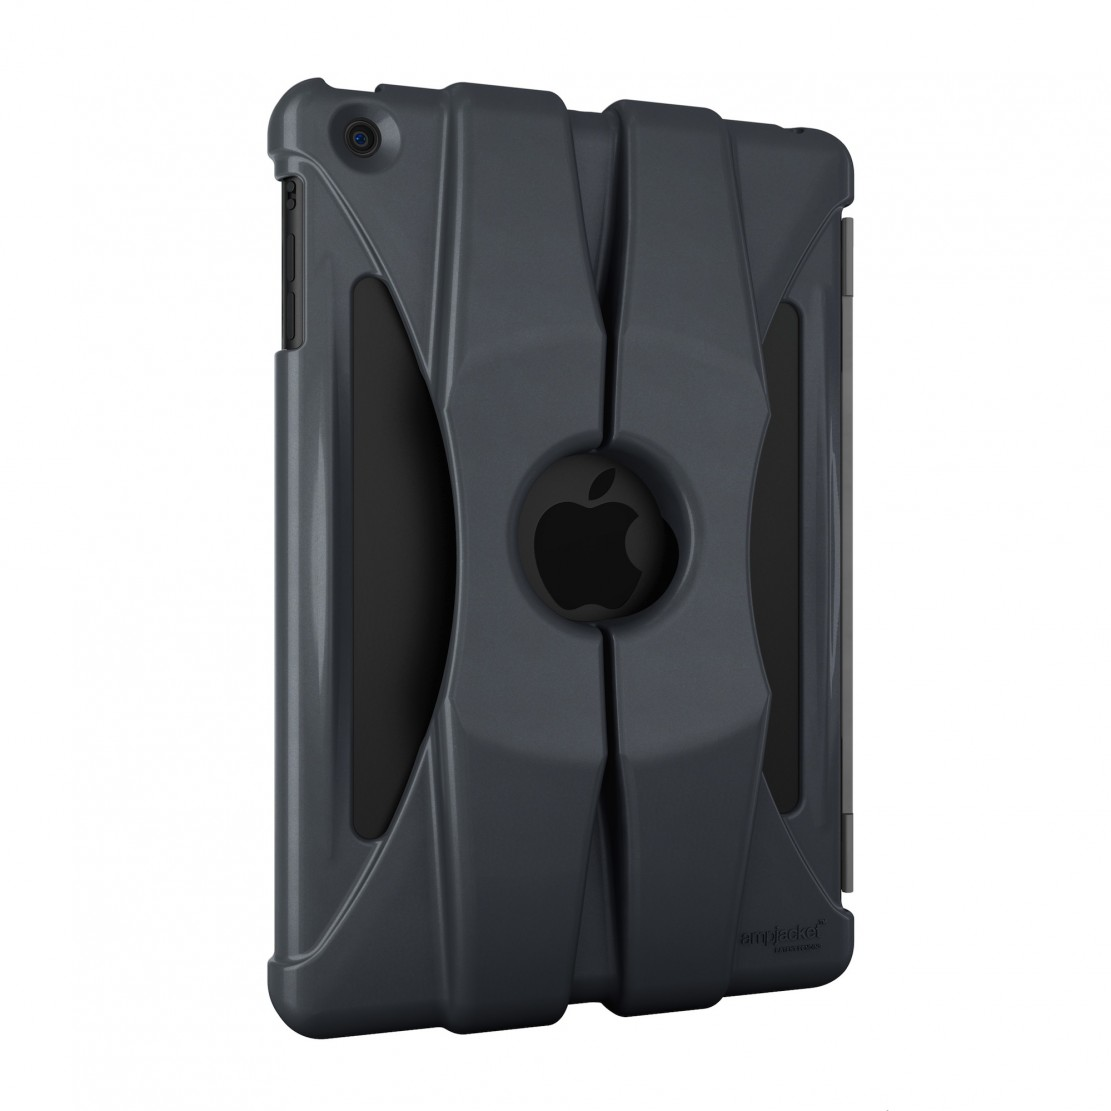 ampjacket for iPad mini by kubxlab